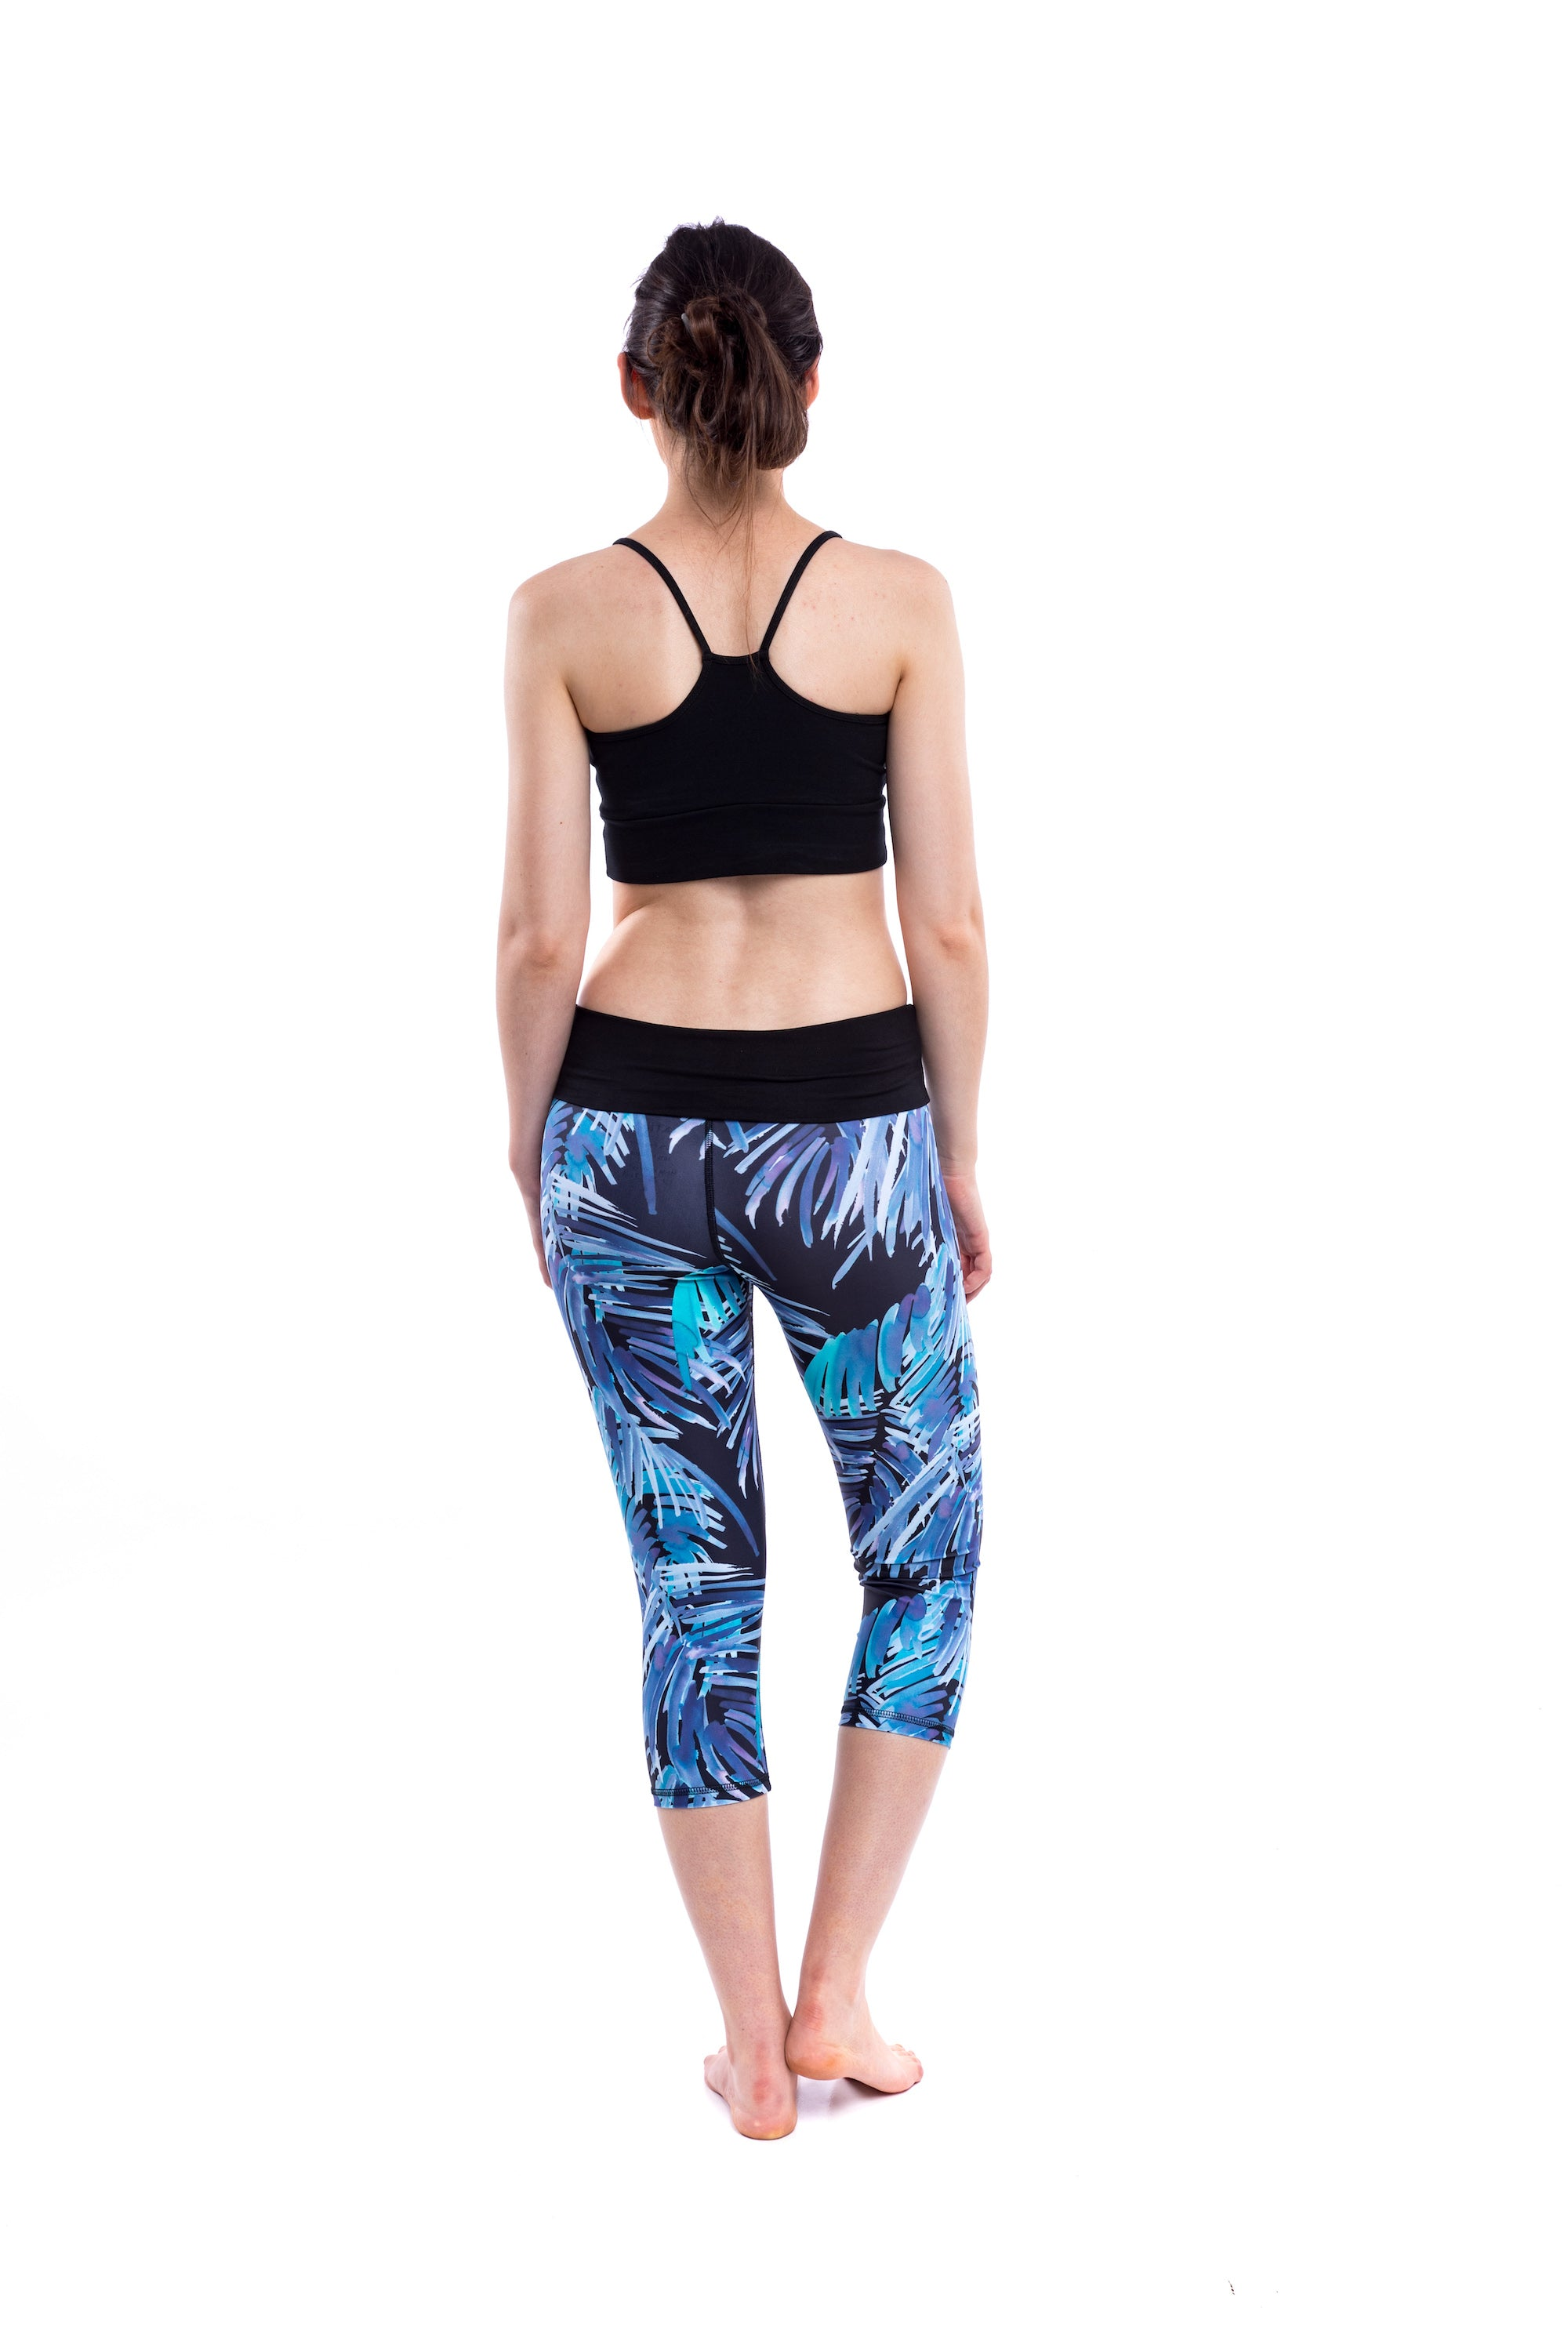 'Nava' Capri Palm Print Yoga Pants - Tanks